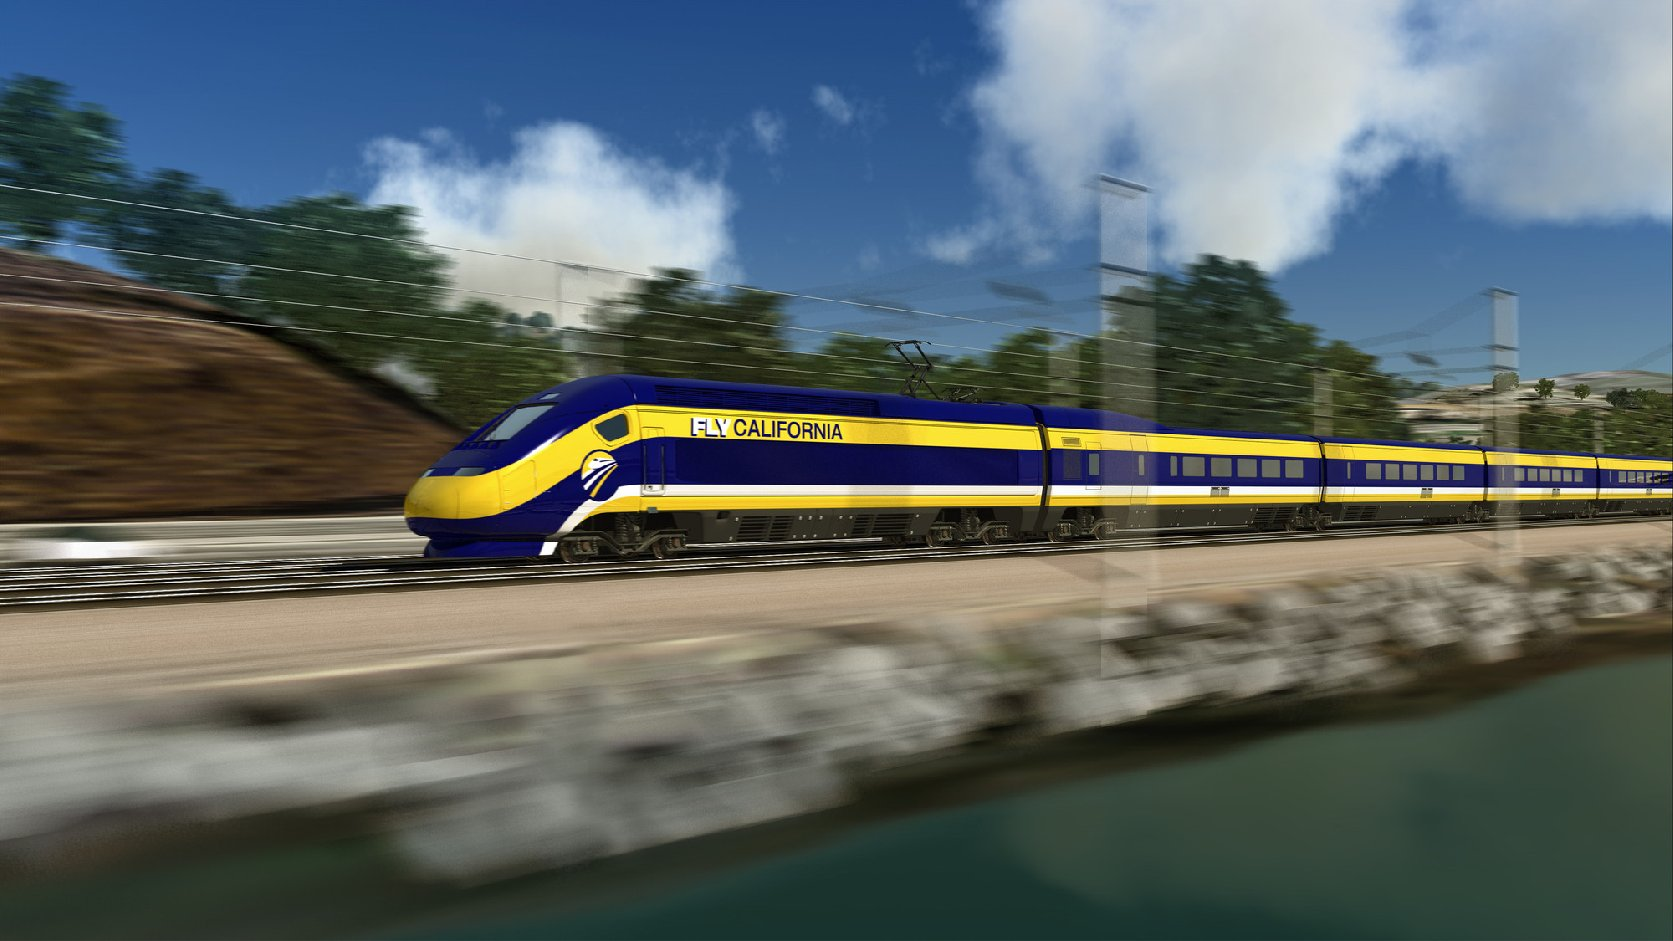 RS2371_highspeedrail-20120706-lpr